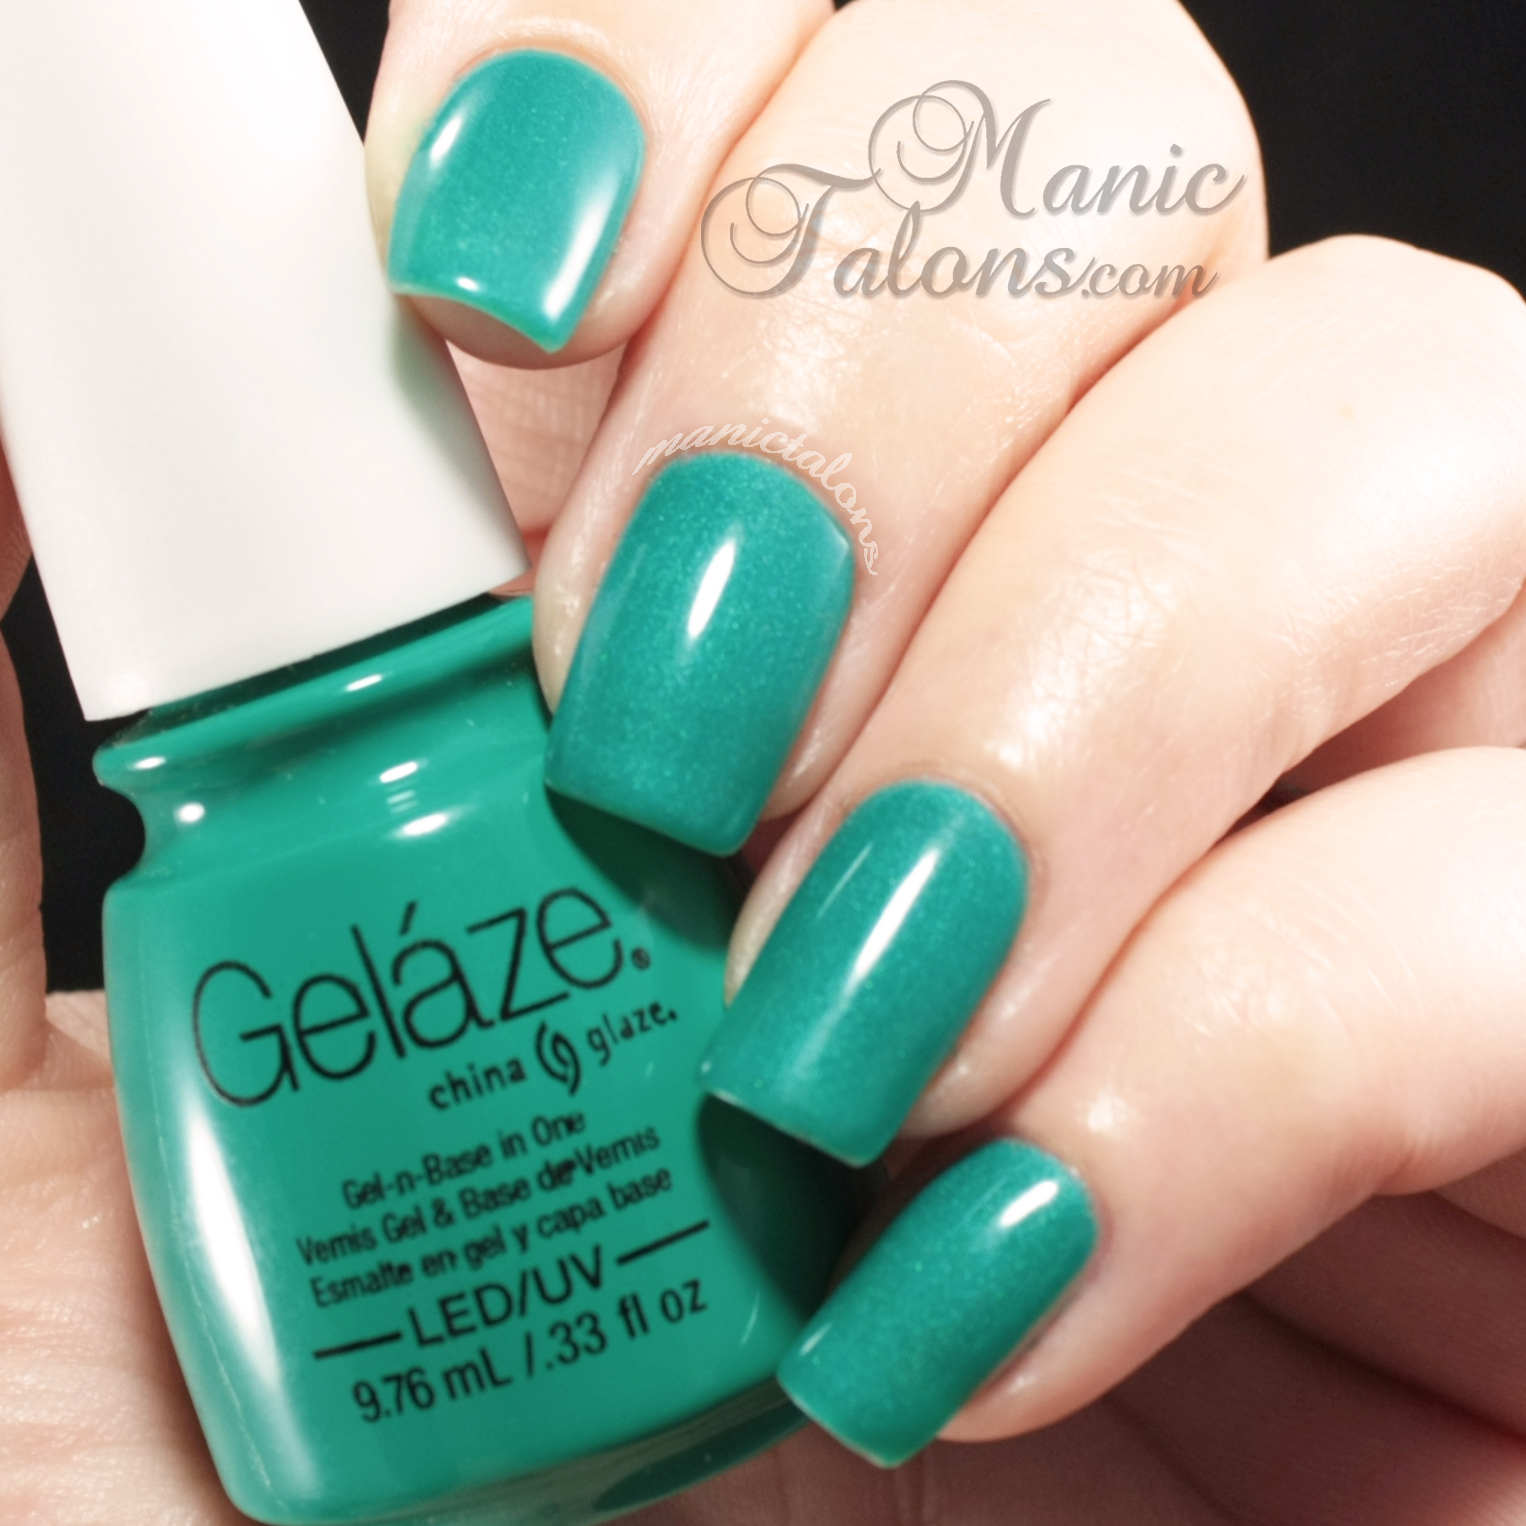 China Glaze Gelaze Gel Polish Turned Up Turquoise Swatch